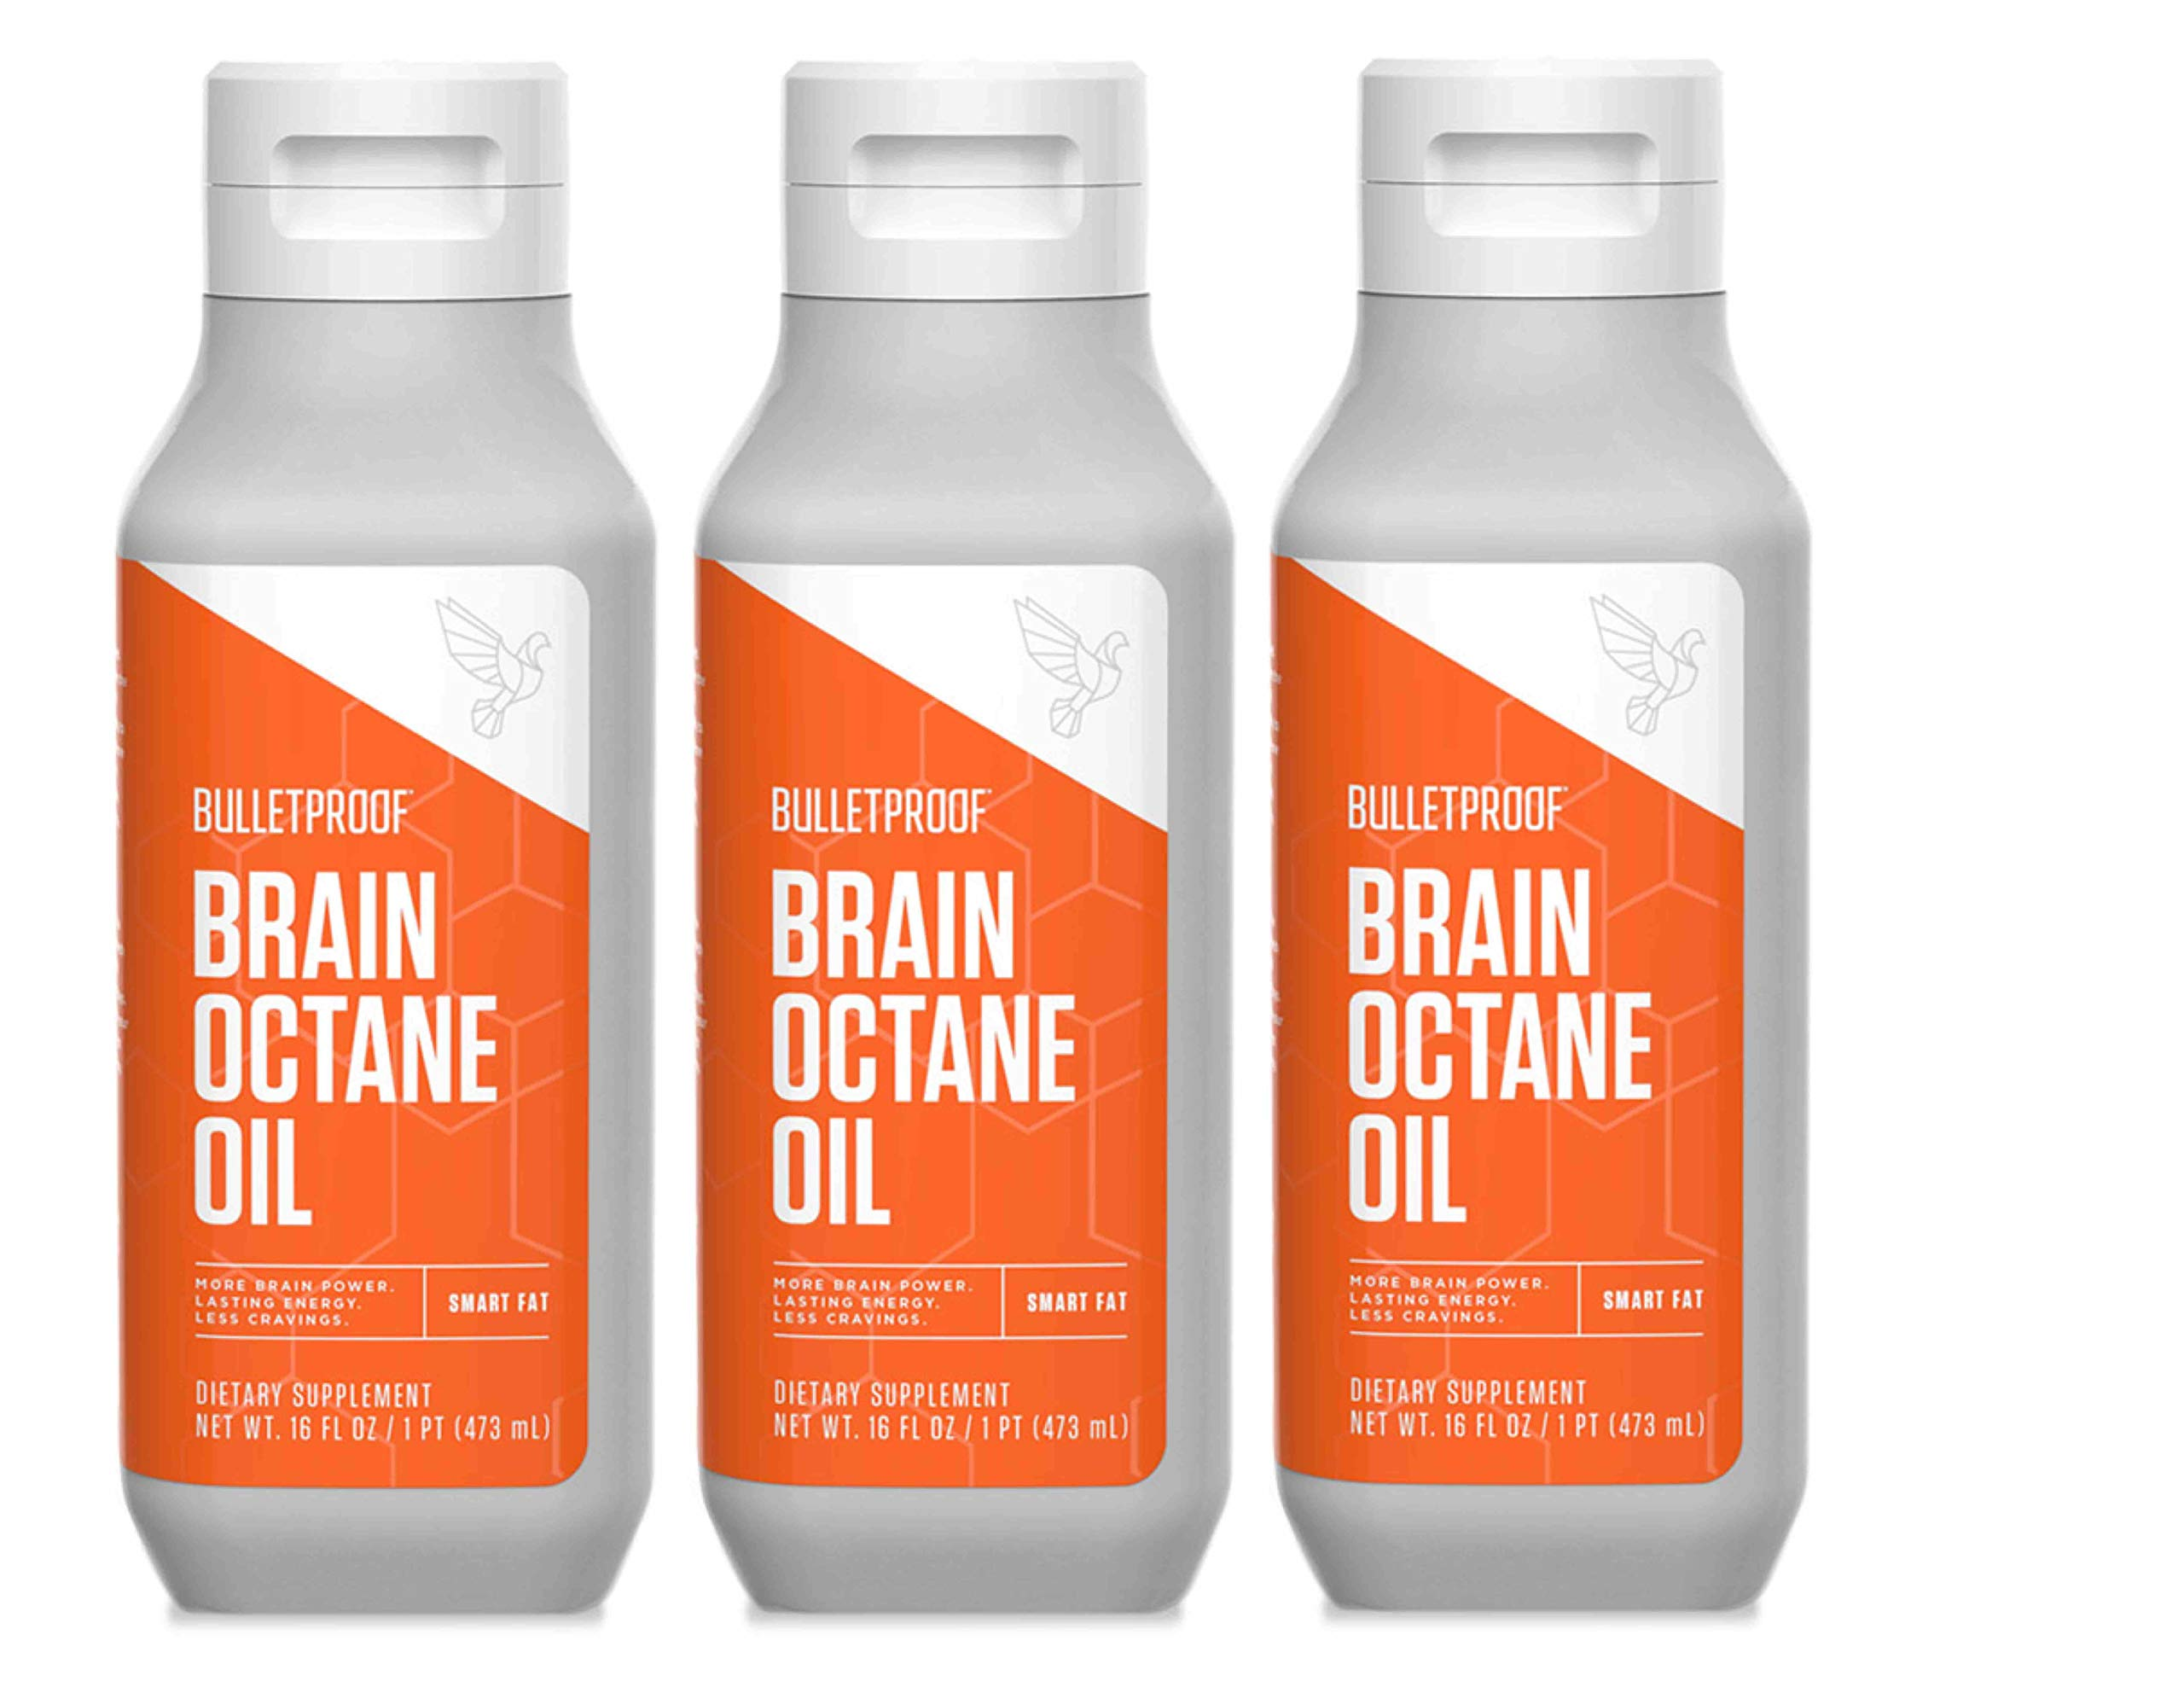 Bulletproof Brain Octane MCT Oil, Perfect for Keto and Paleo Diet, 100% Non-GMO Premium C8 Oil, Ketogenic Friendly, Responsibly Sourced from Coconuts Only, Made in the USA (3-Pack of 16oz) by Bulletproof